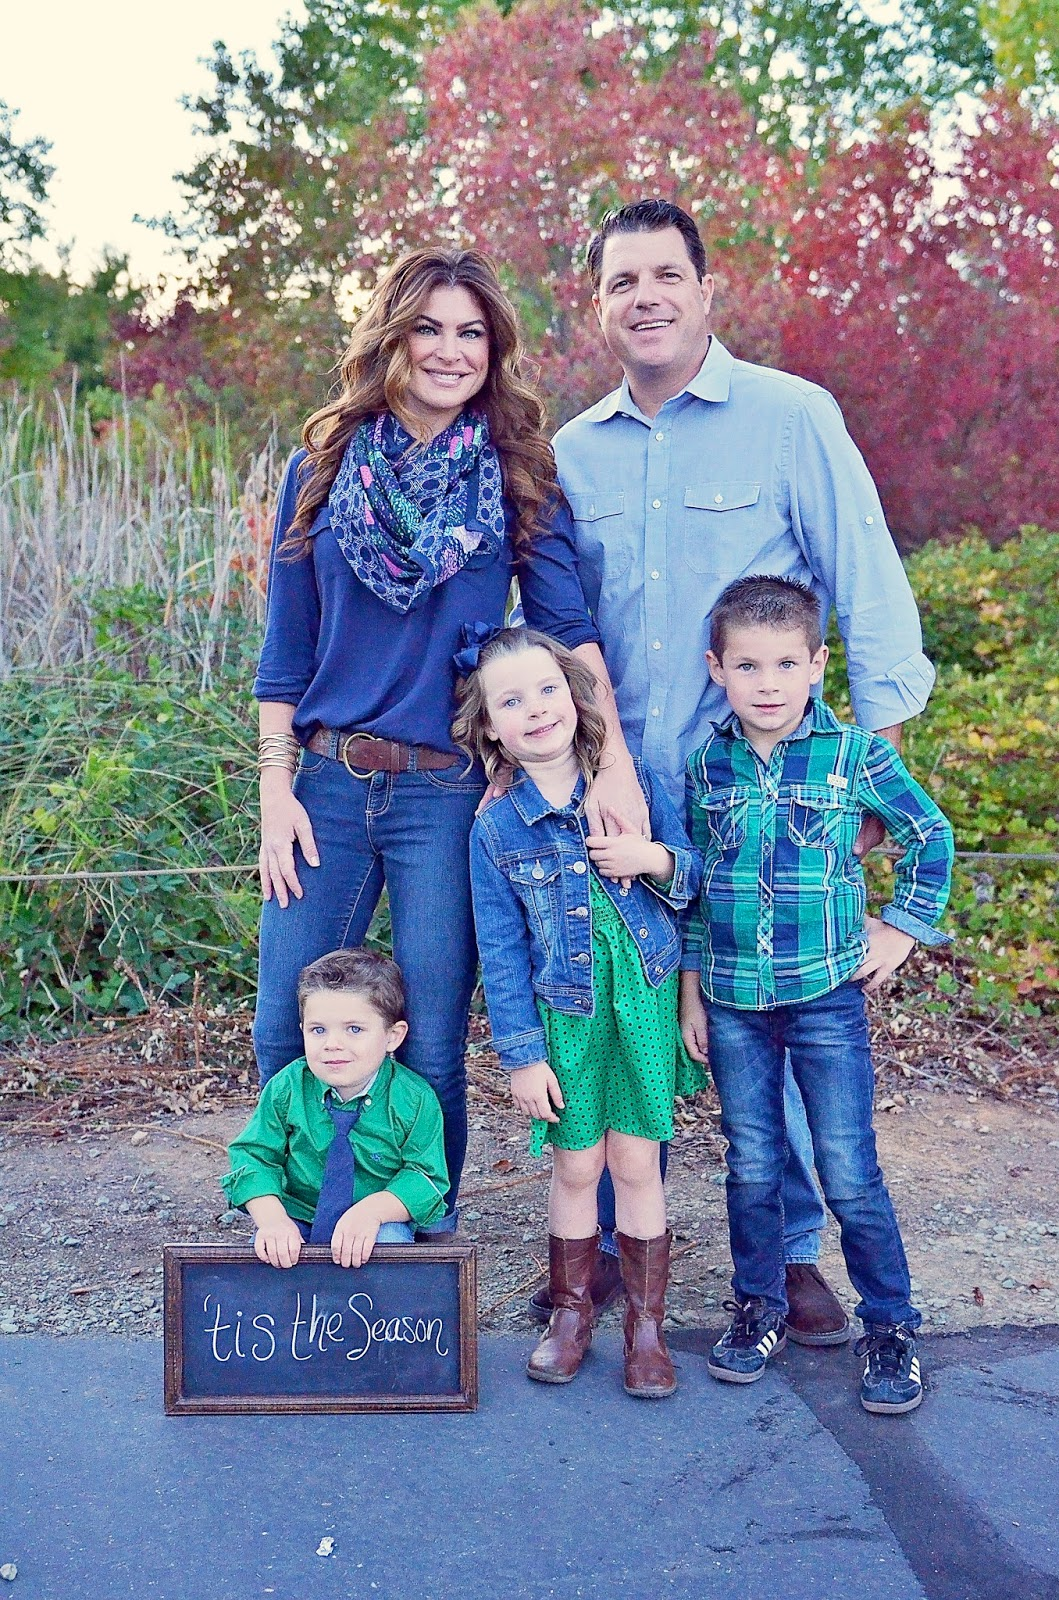 Fall family photos what to wear 2015 california for Best family pictures